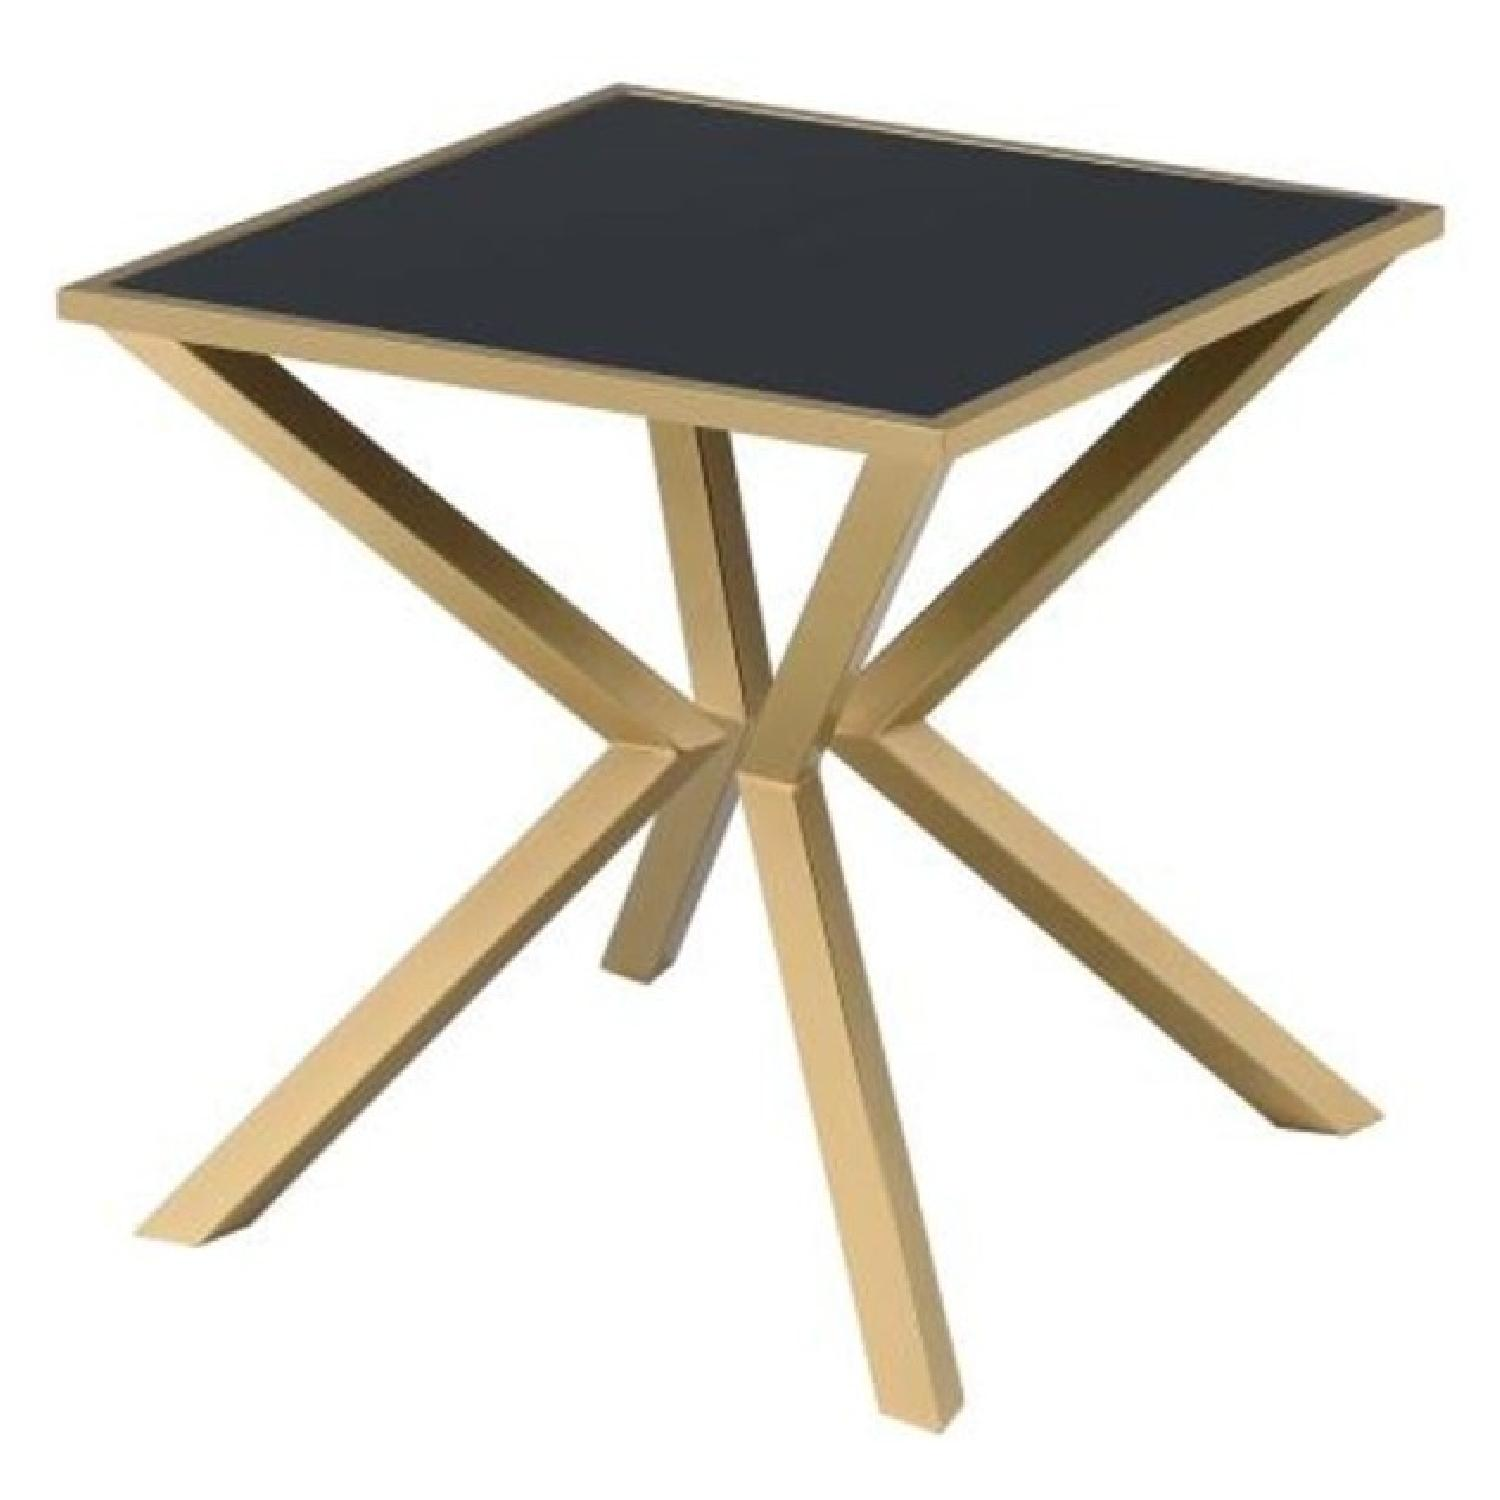 Coffee Table Angled Legs: Side Table W/ Brass Angled Legs & Black Glass Top